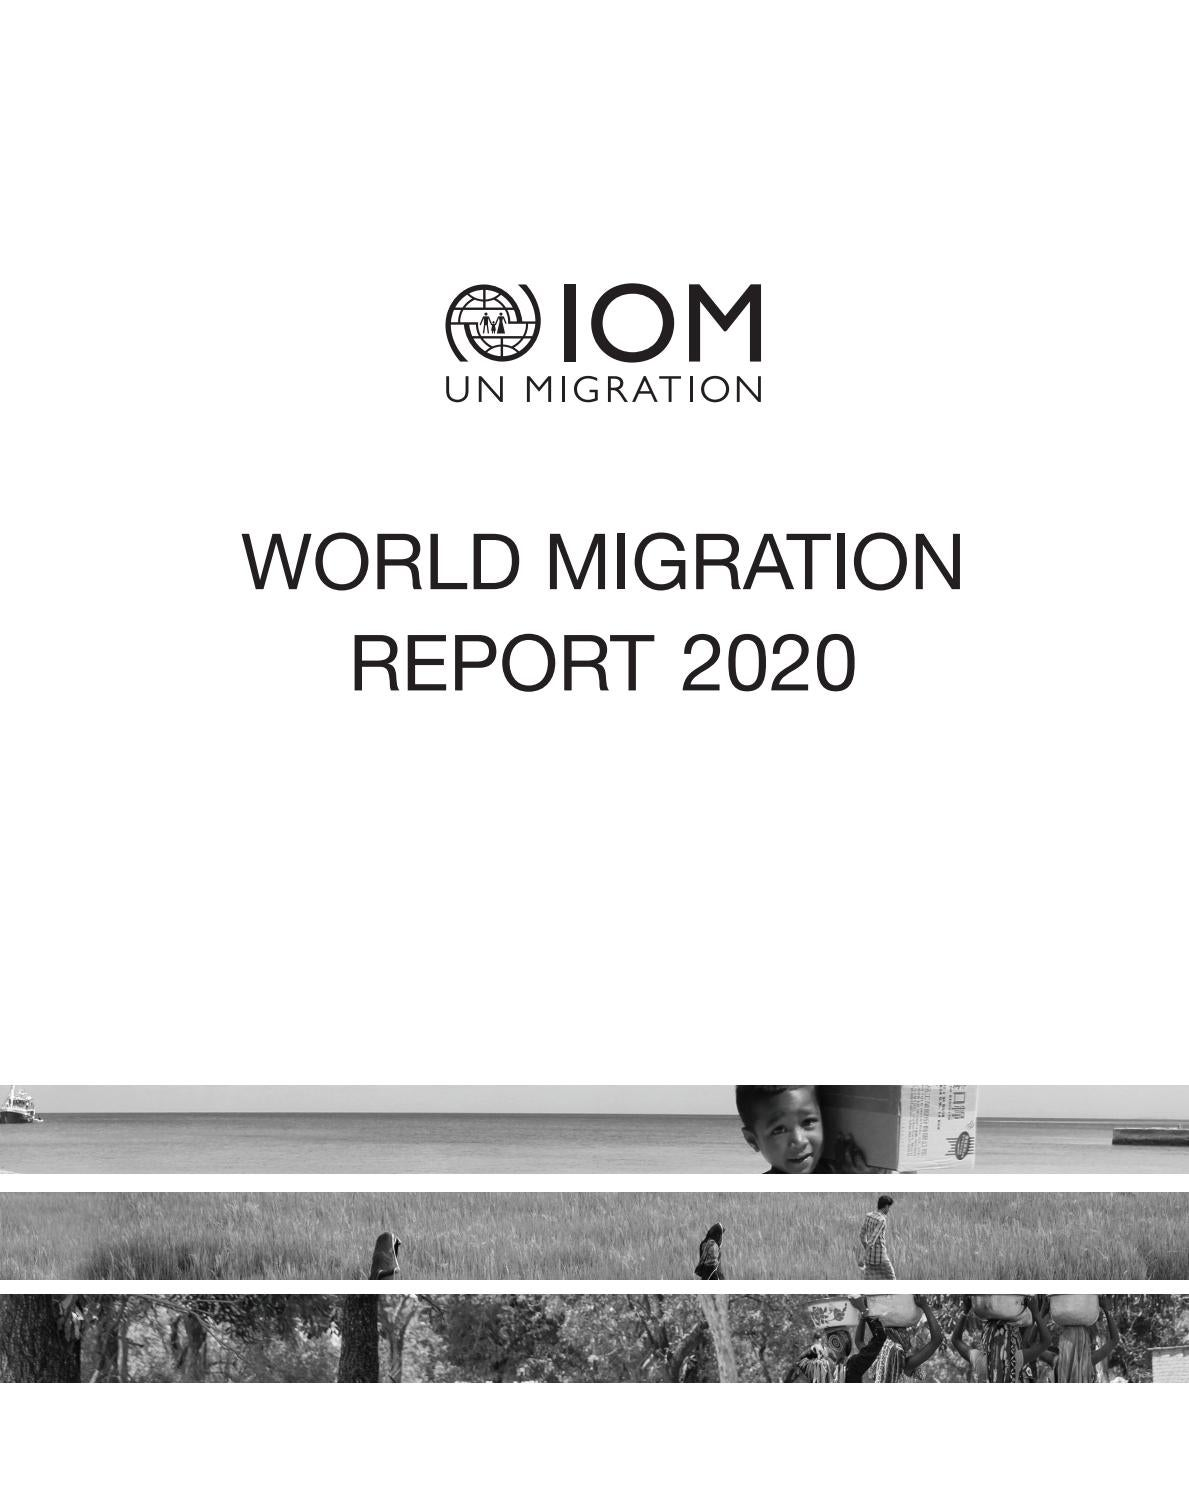 World Migration Report 2020 By United Nations Publications Issuu I watch videos at youtube at 720p quality and no buffers that includes streaming videos too in 720p. world migration report 2020 by united